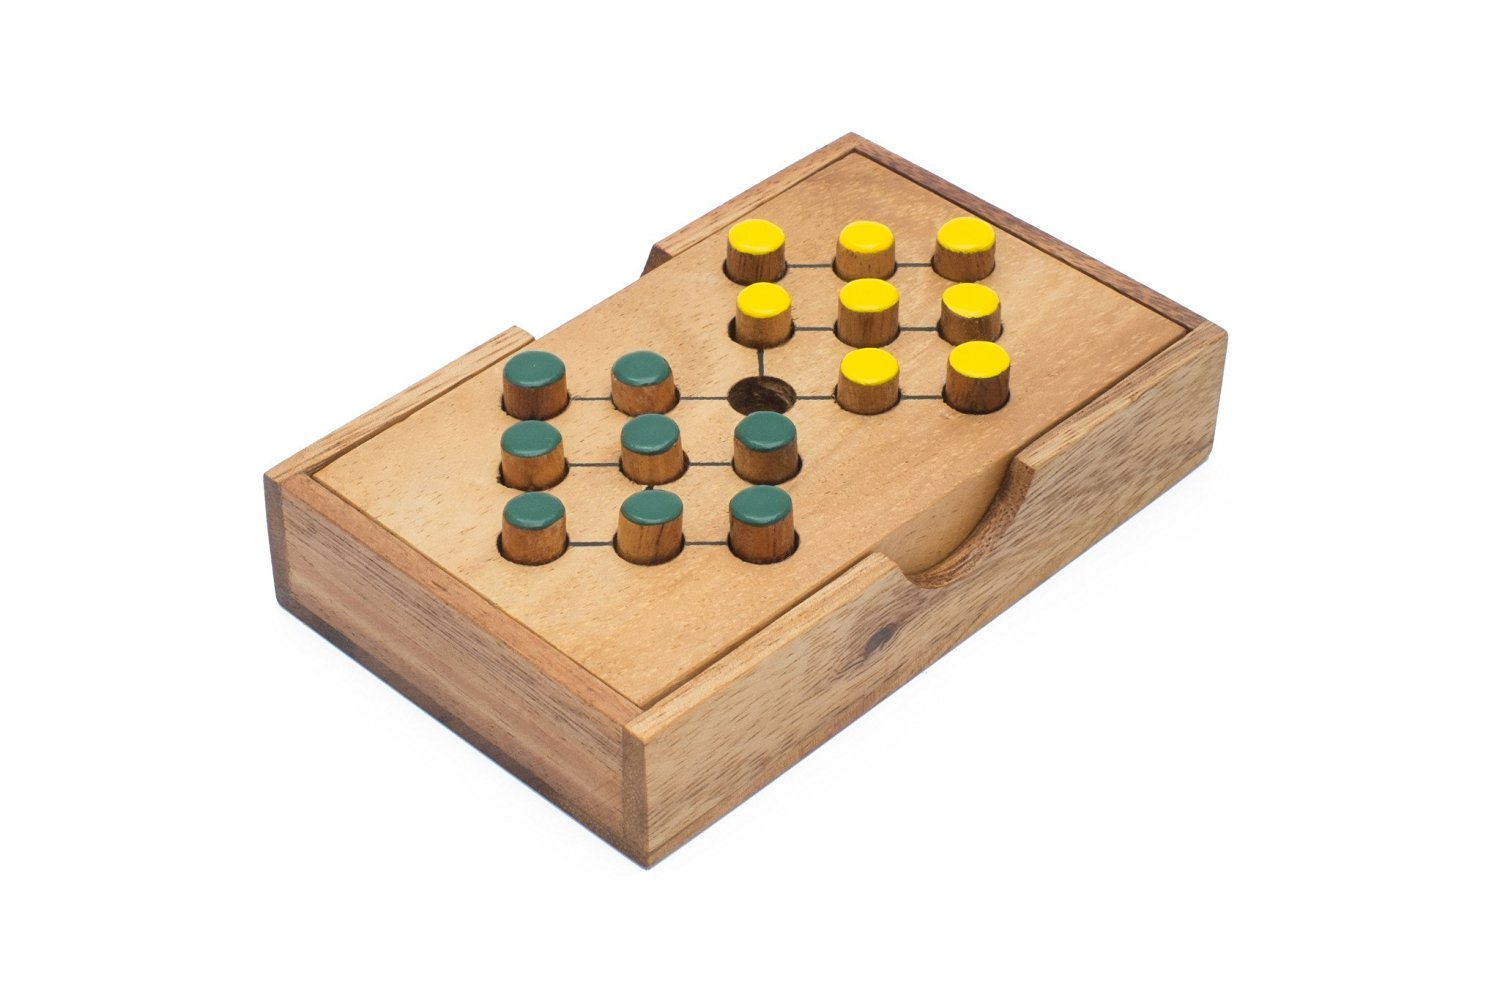 SiamMandalay: Battlefield - A Traditional Game of Classic Solitaire Wooden Peg Game